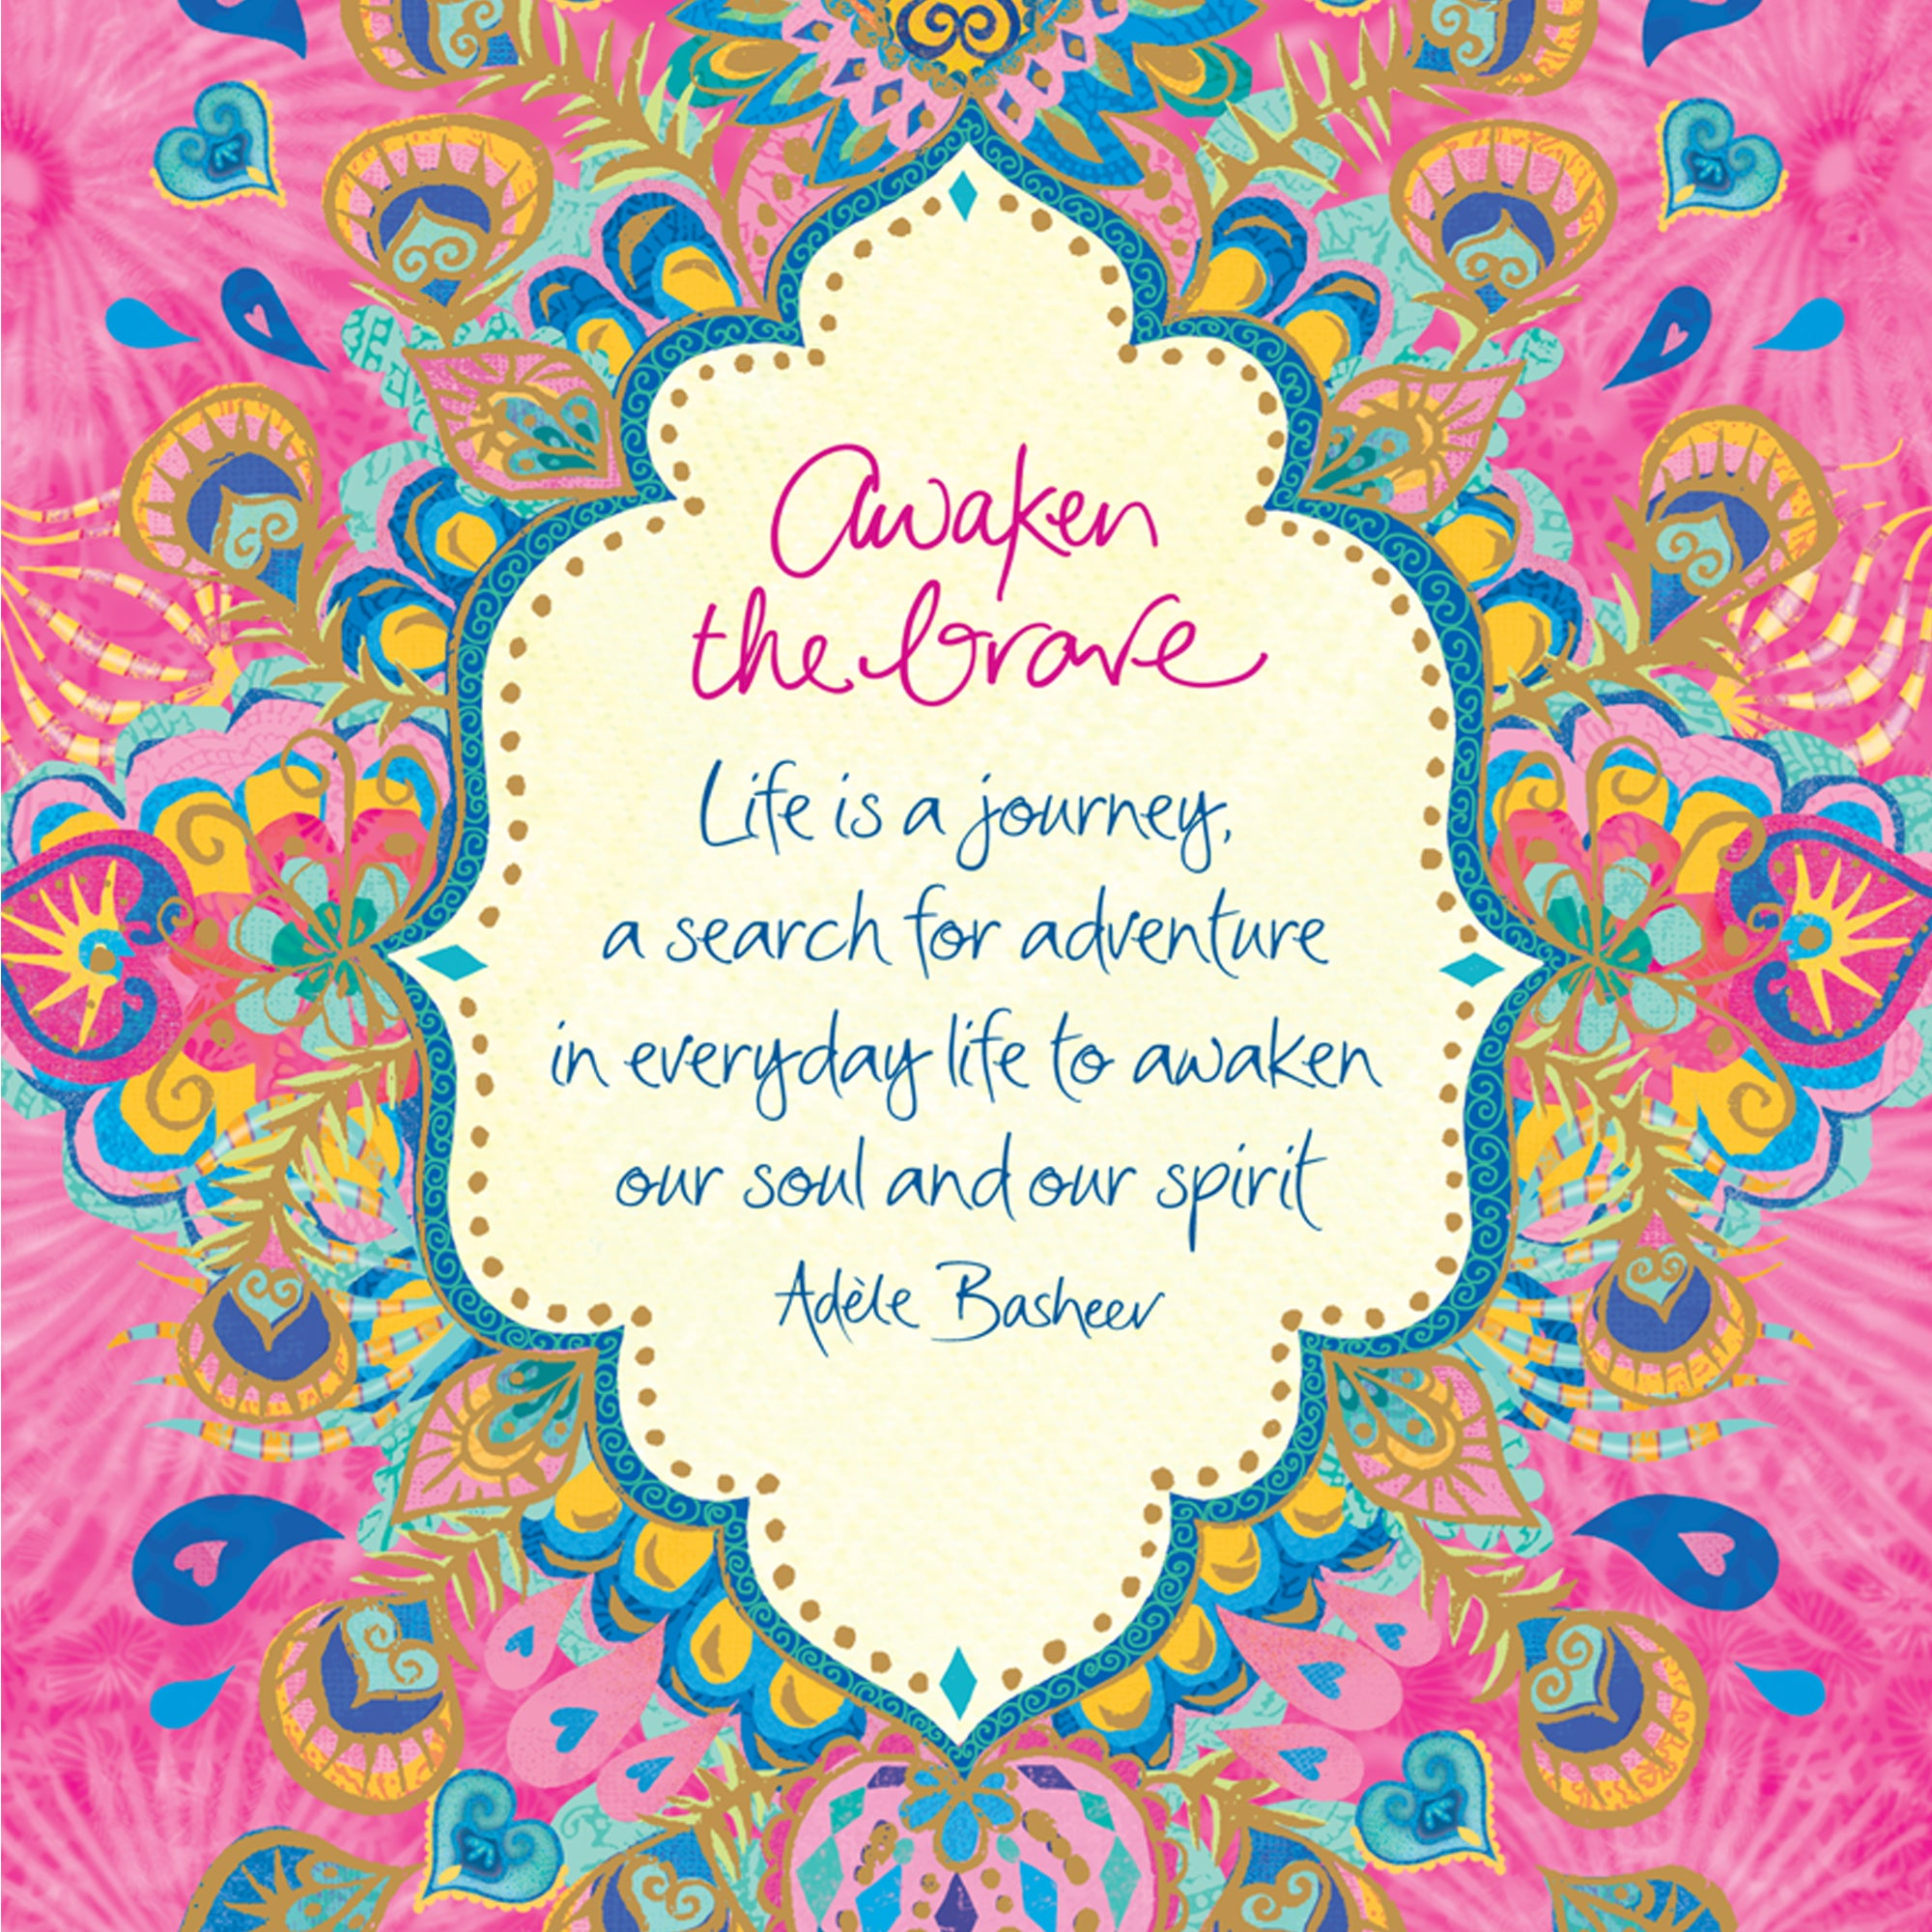 Intrinsic Awaken The Brave Quote - Digital Wallpaper